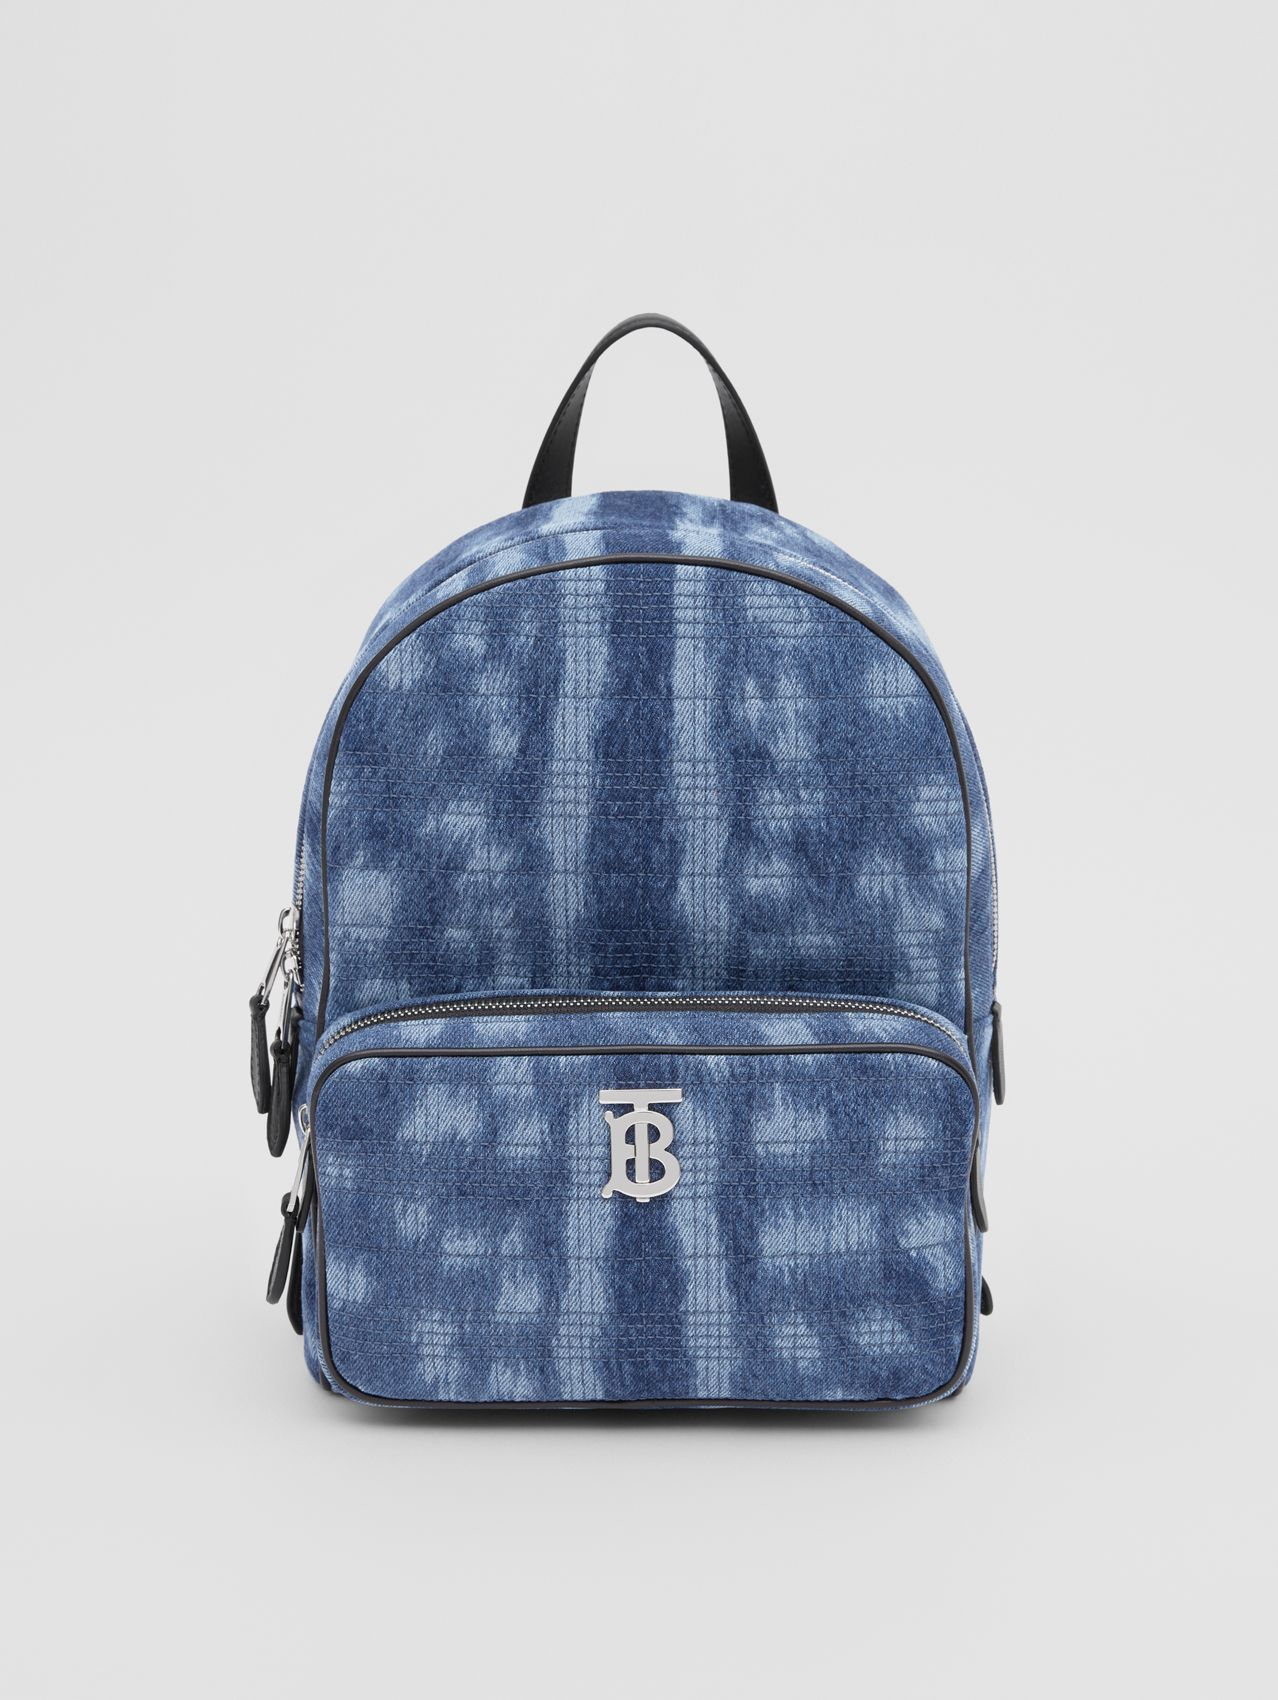 Quilted Deer Print Denim Backpack in Blue